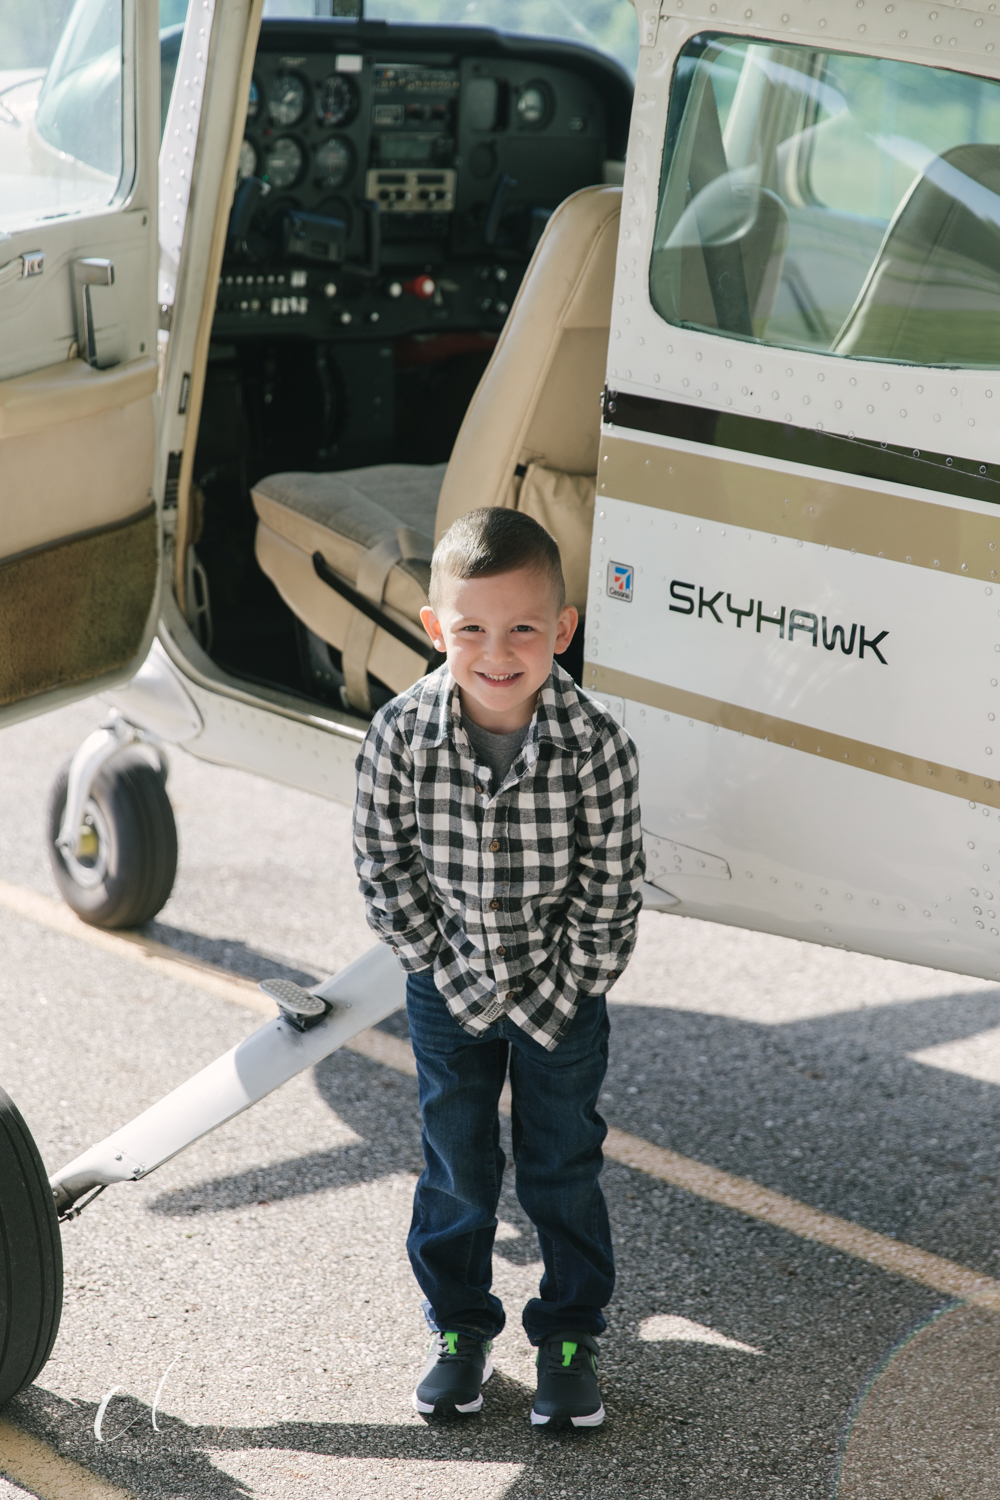 Aviation_Themed_Fourth_Birthday_at_Youngstown_Airport_Hanger_Vienna_OH_by_Child_and_Family_Photographer_Christie_Leigh_Photo-5.JPG